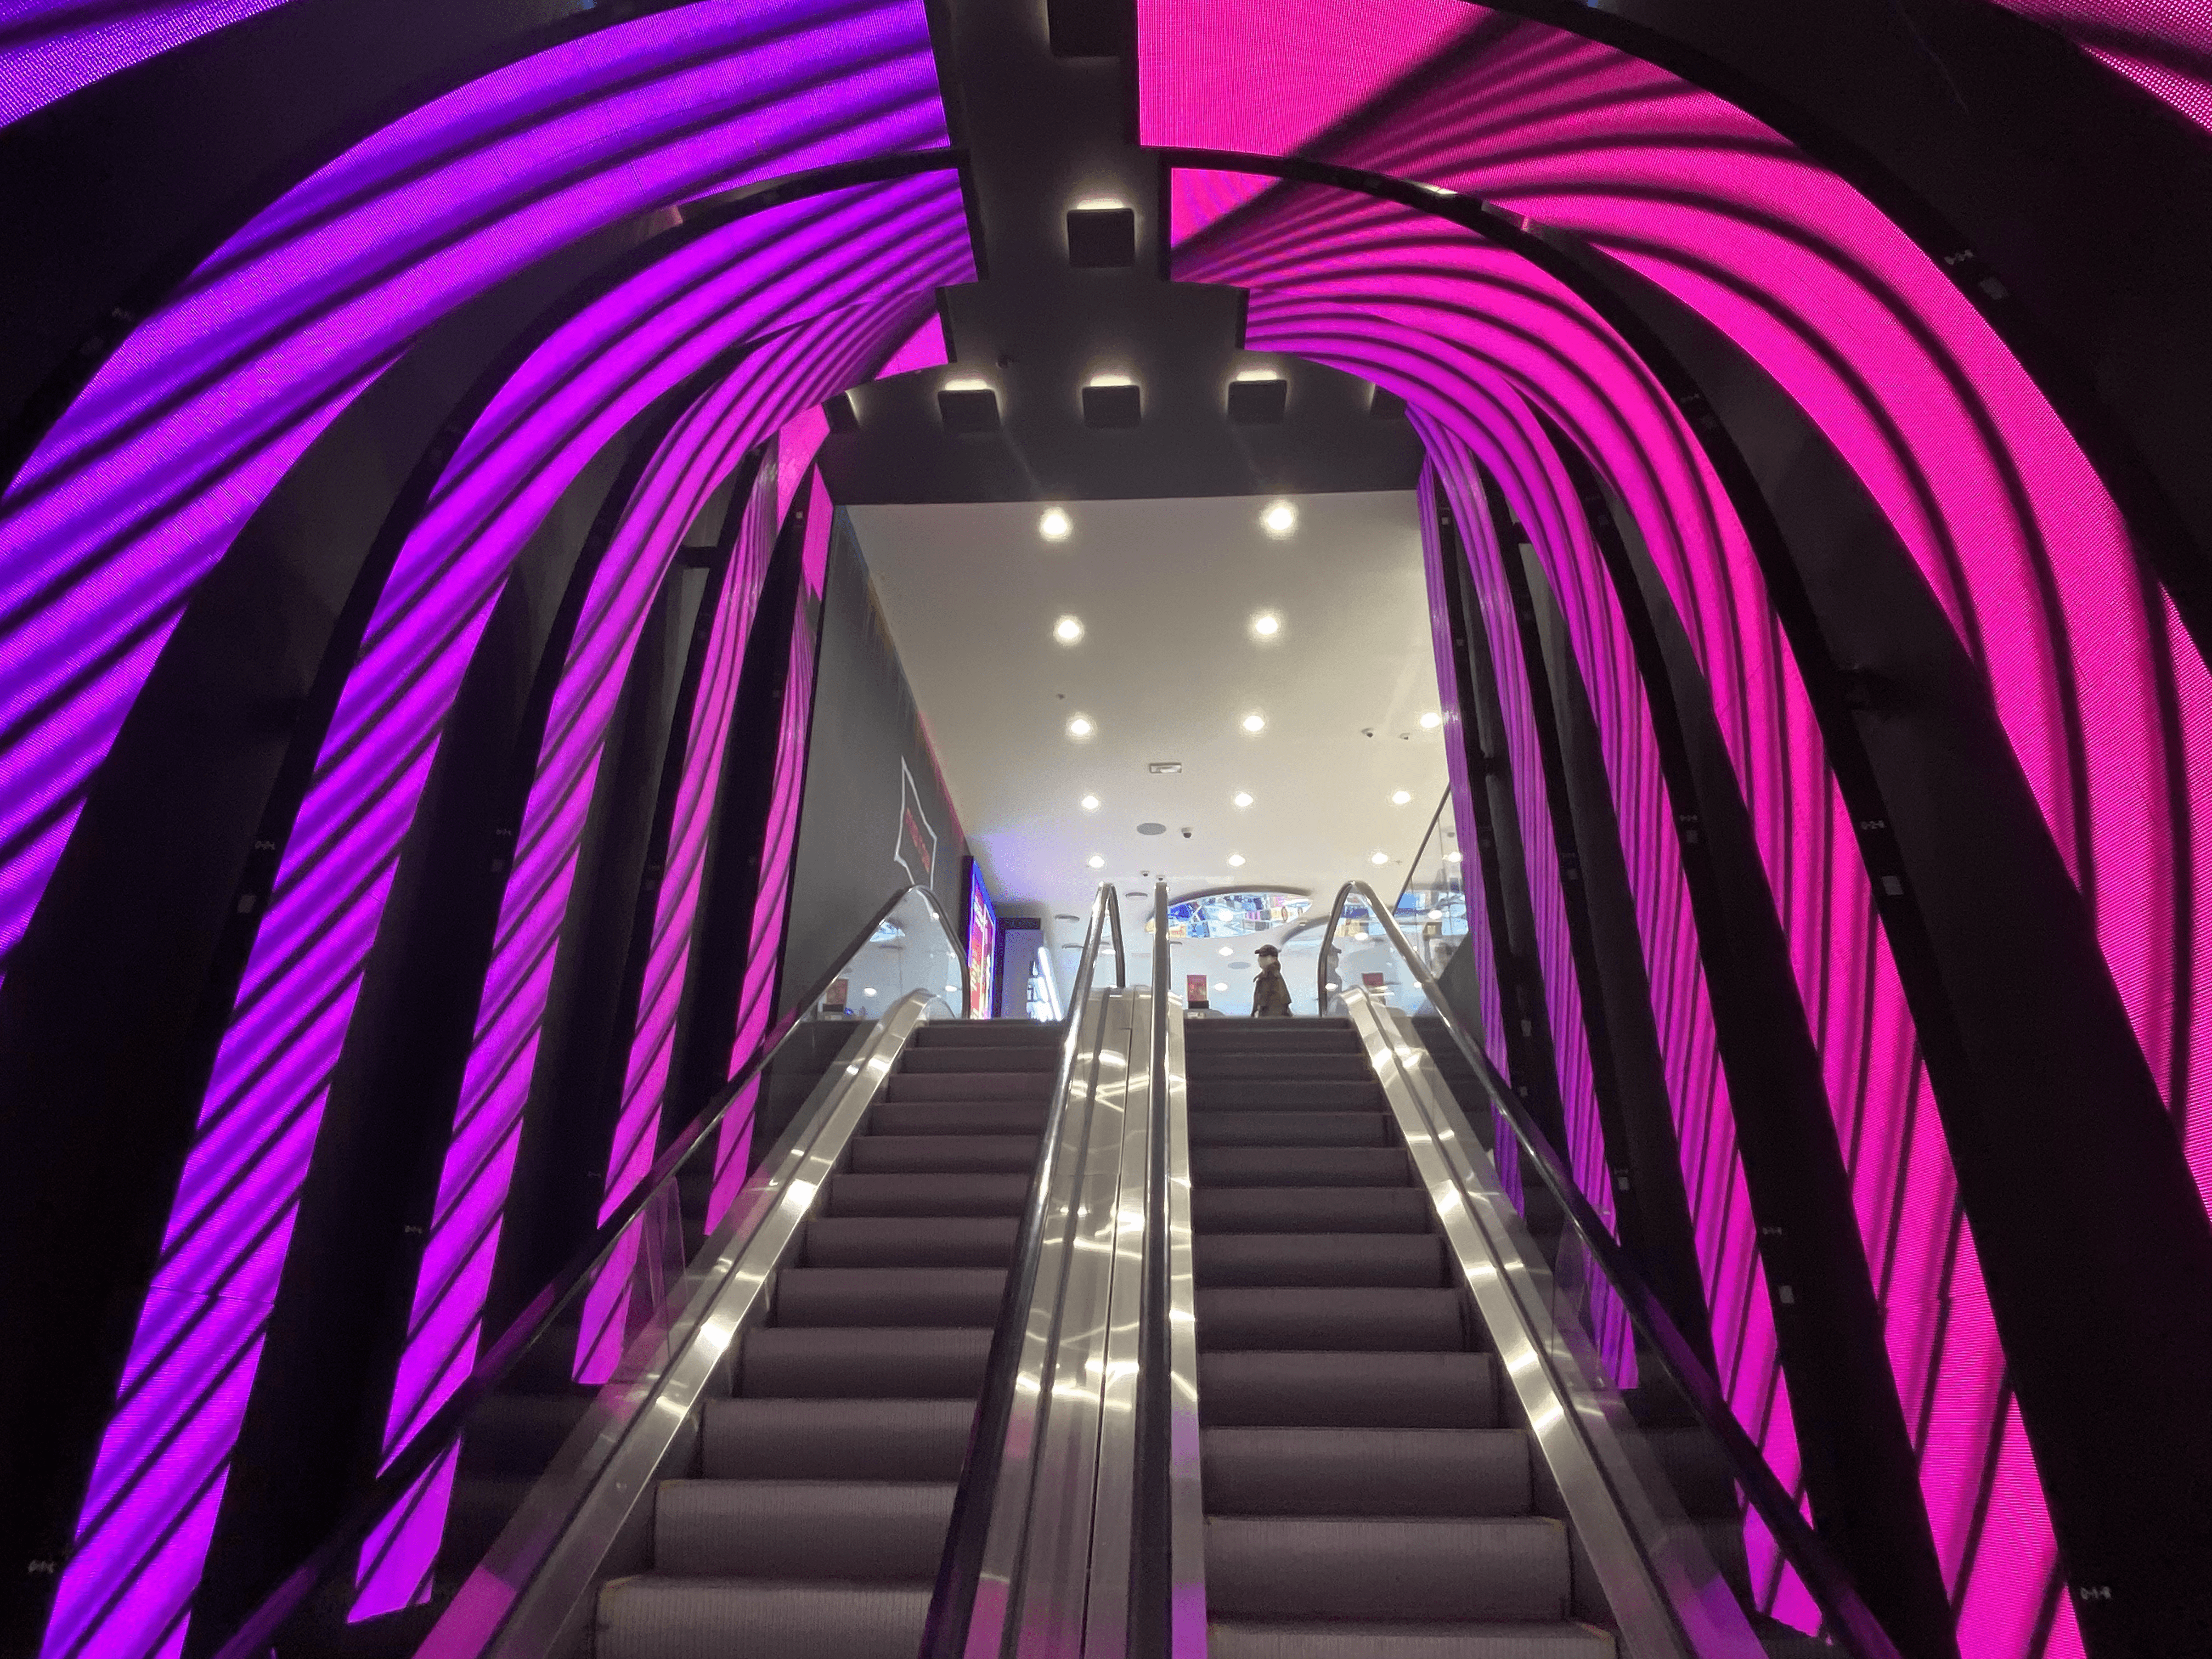 Tunnel Led on Printemps in Paris